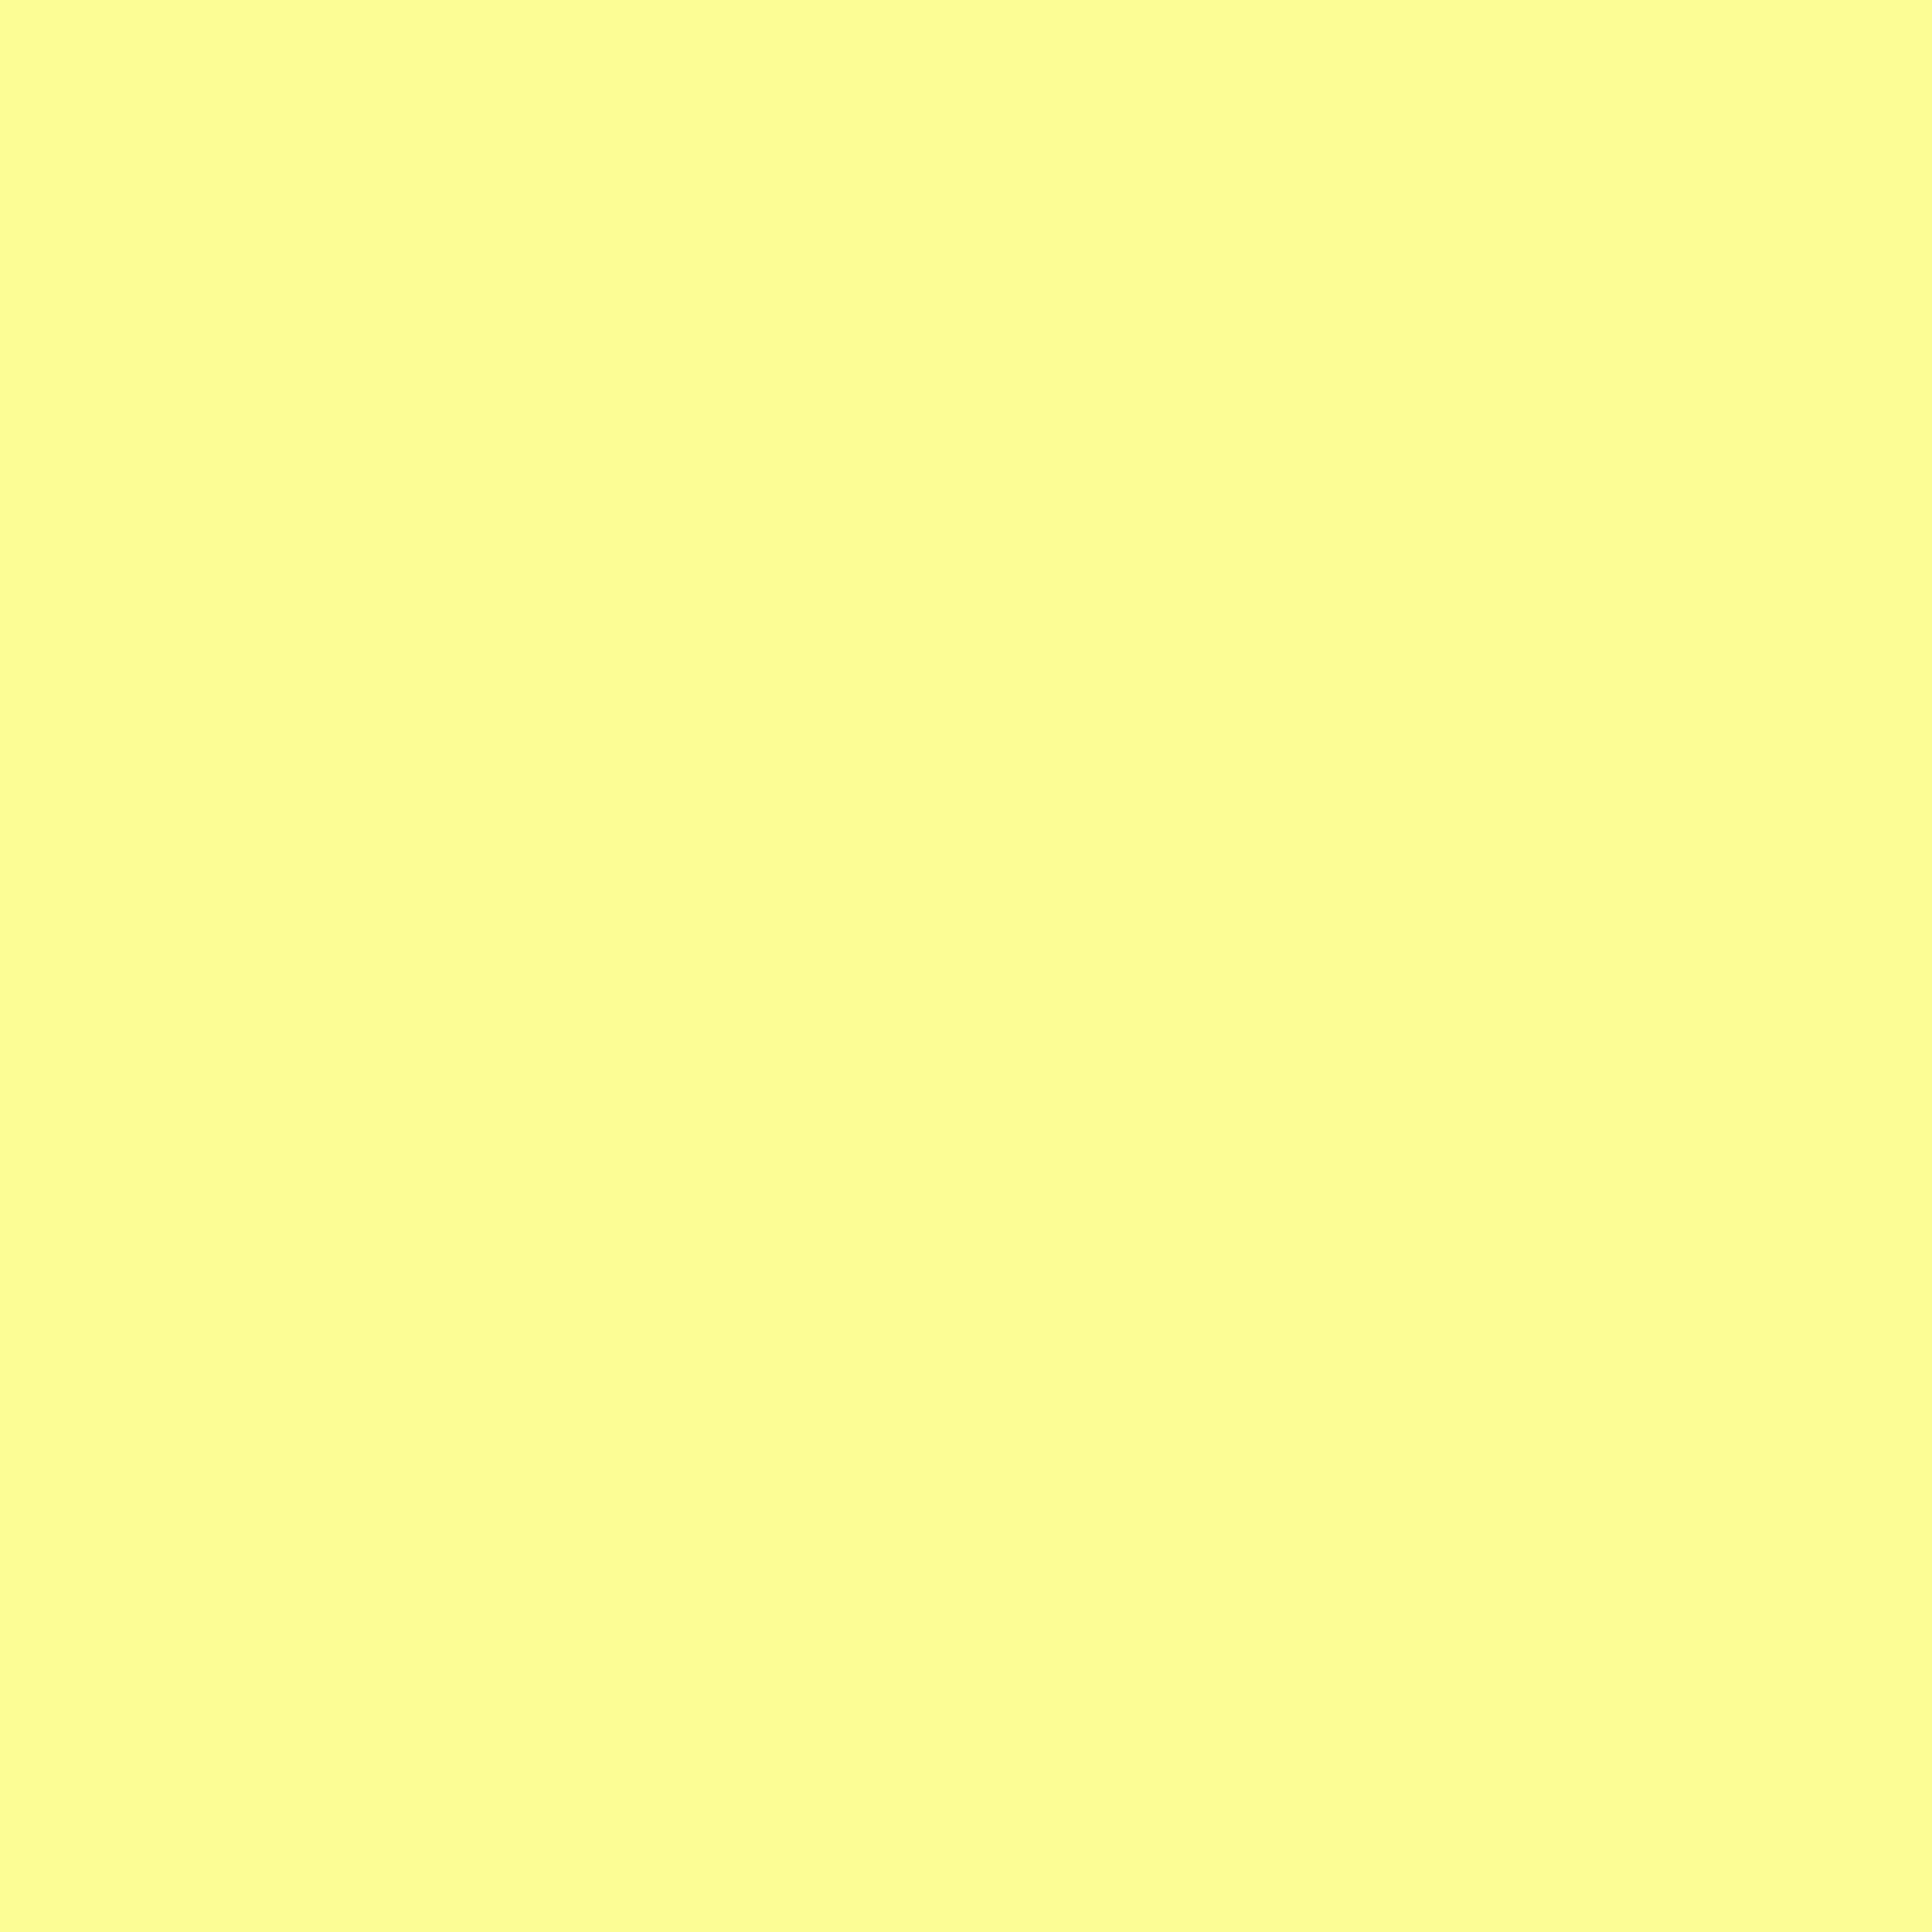 2048x2048 Pastel Yellow Solid Color Background